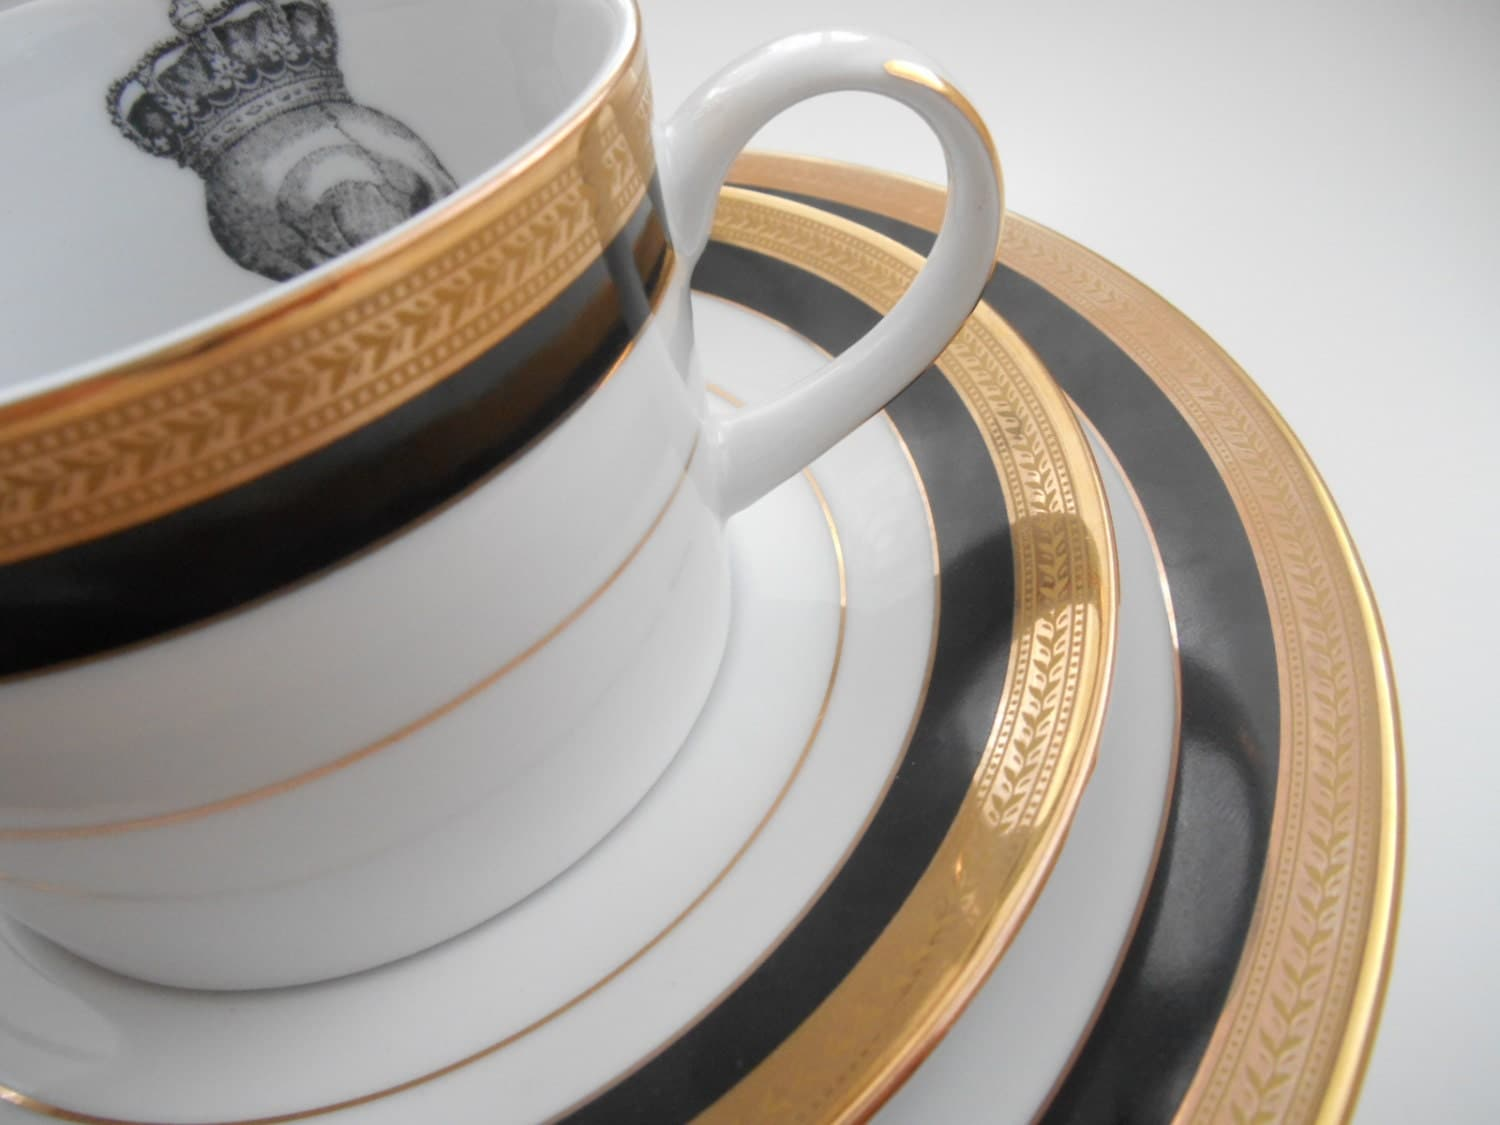 Black/Gold Skull Dinnerware, PAYMENT PLANS AVAILABLE, on